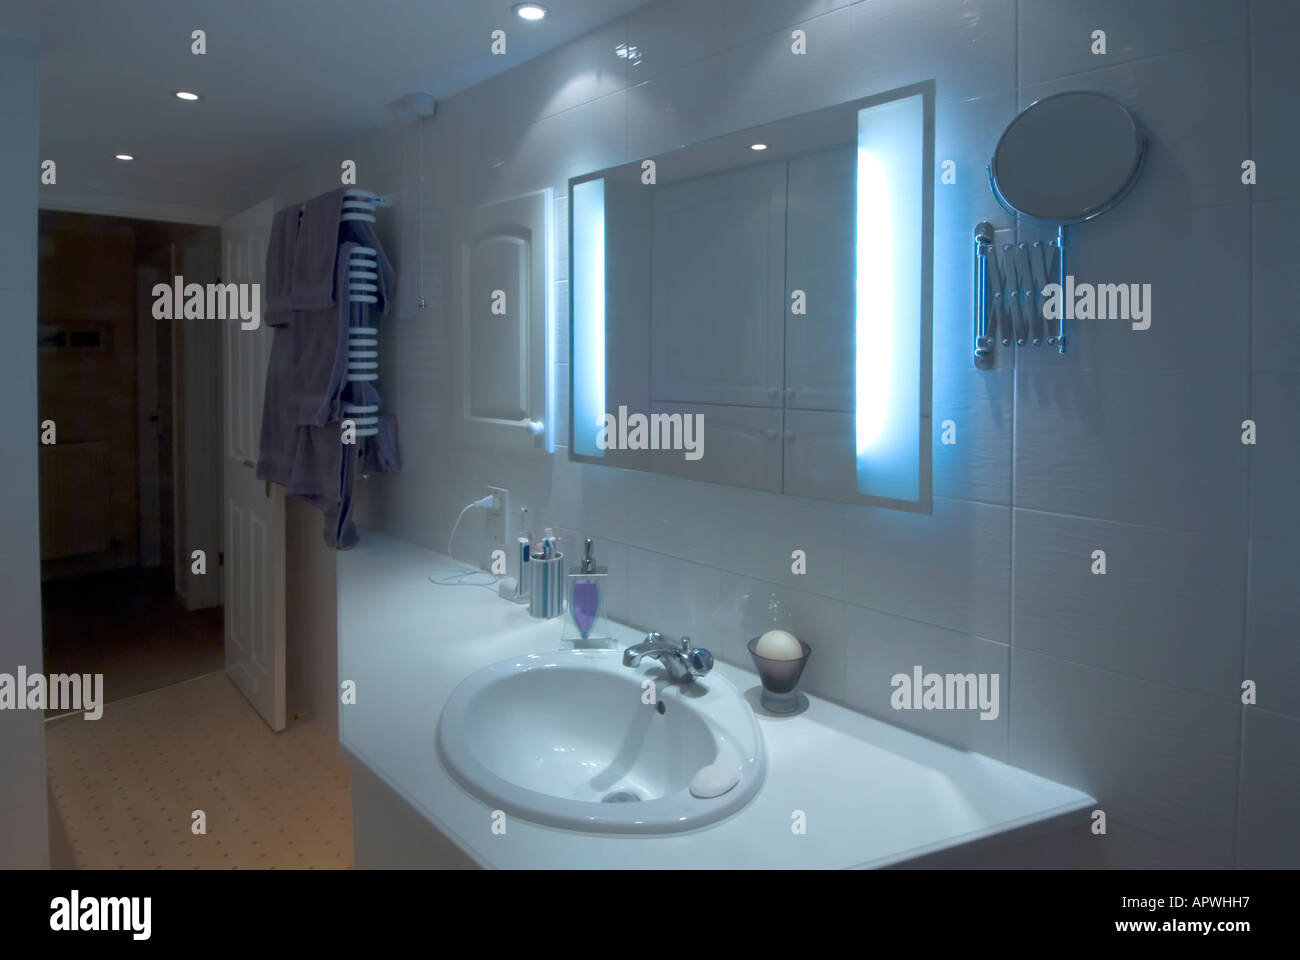 Vanity Unit Stockfotos & Vanity Unit Bilder - Alamy